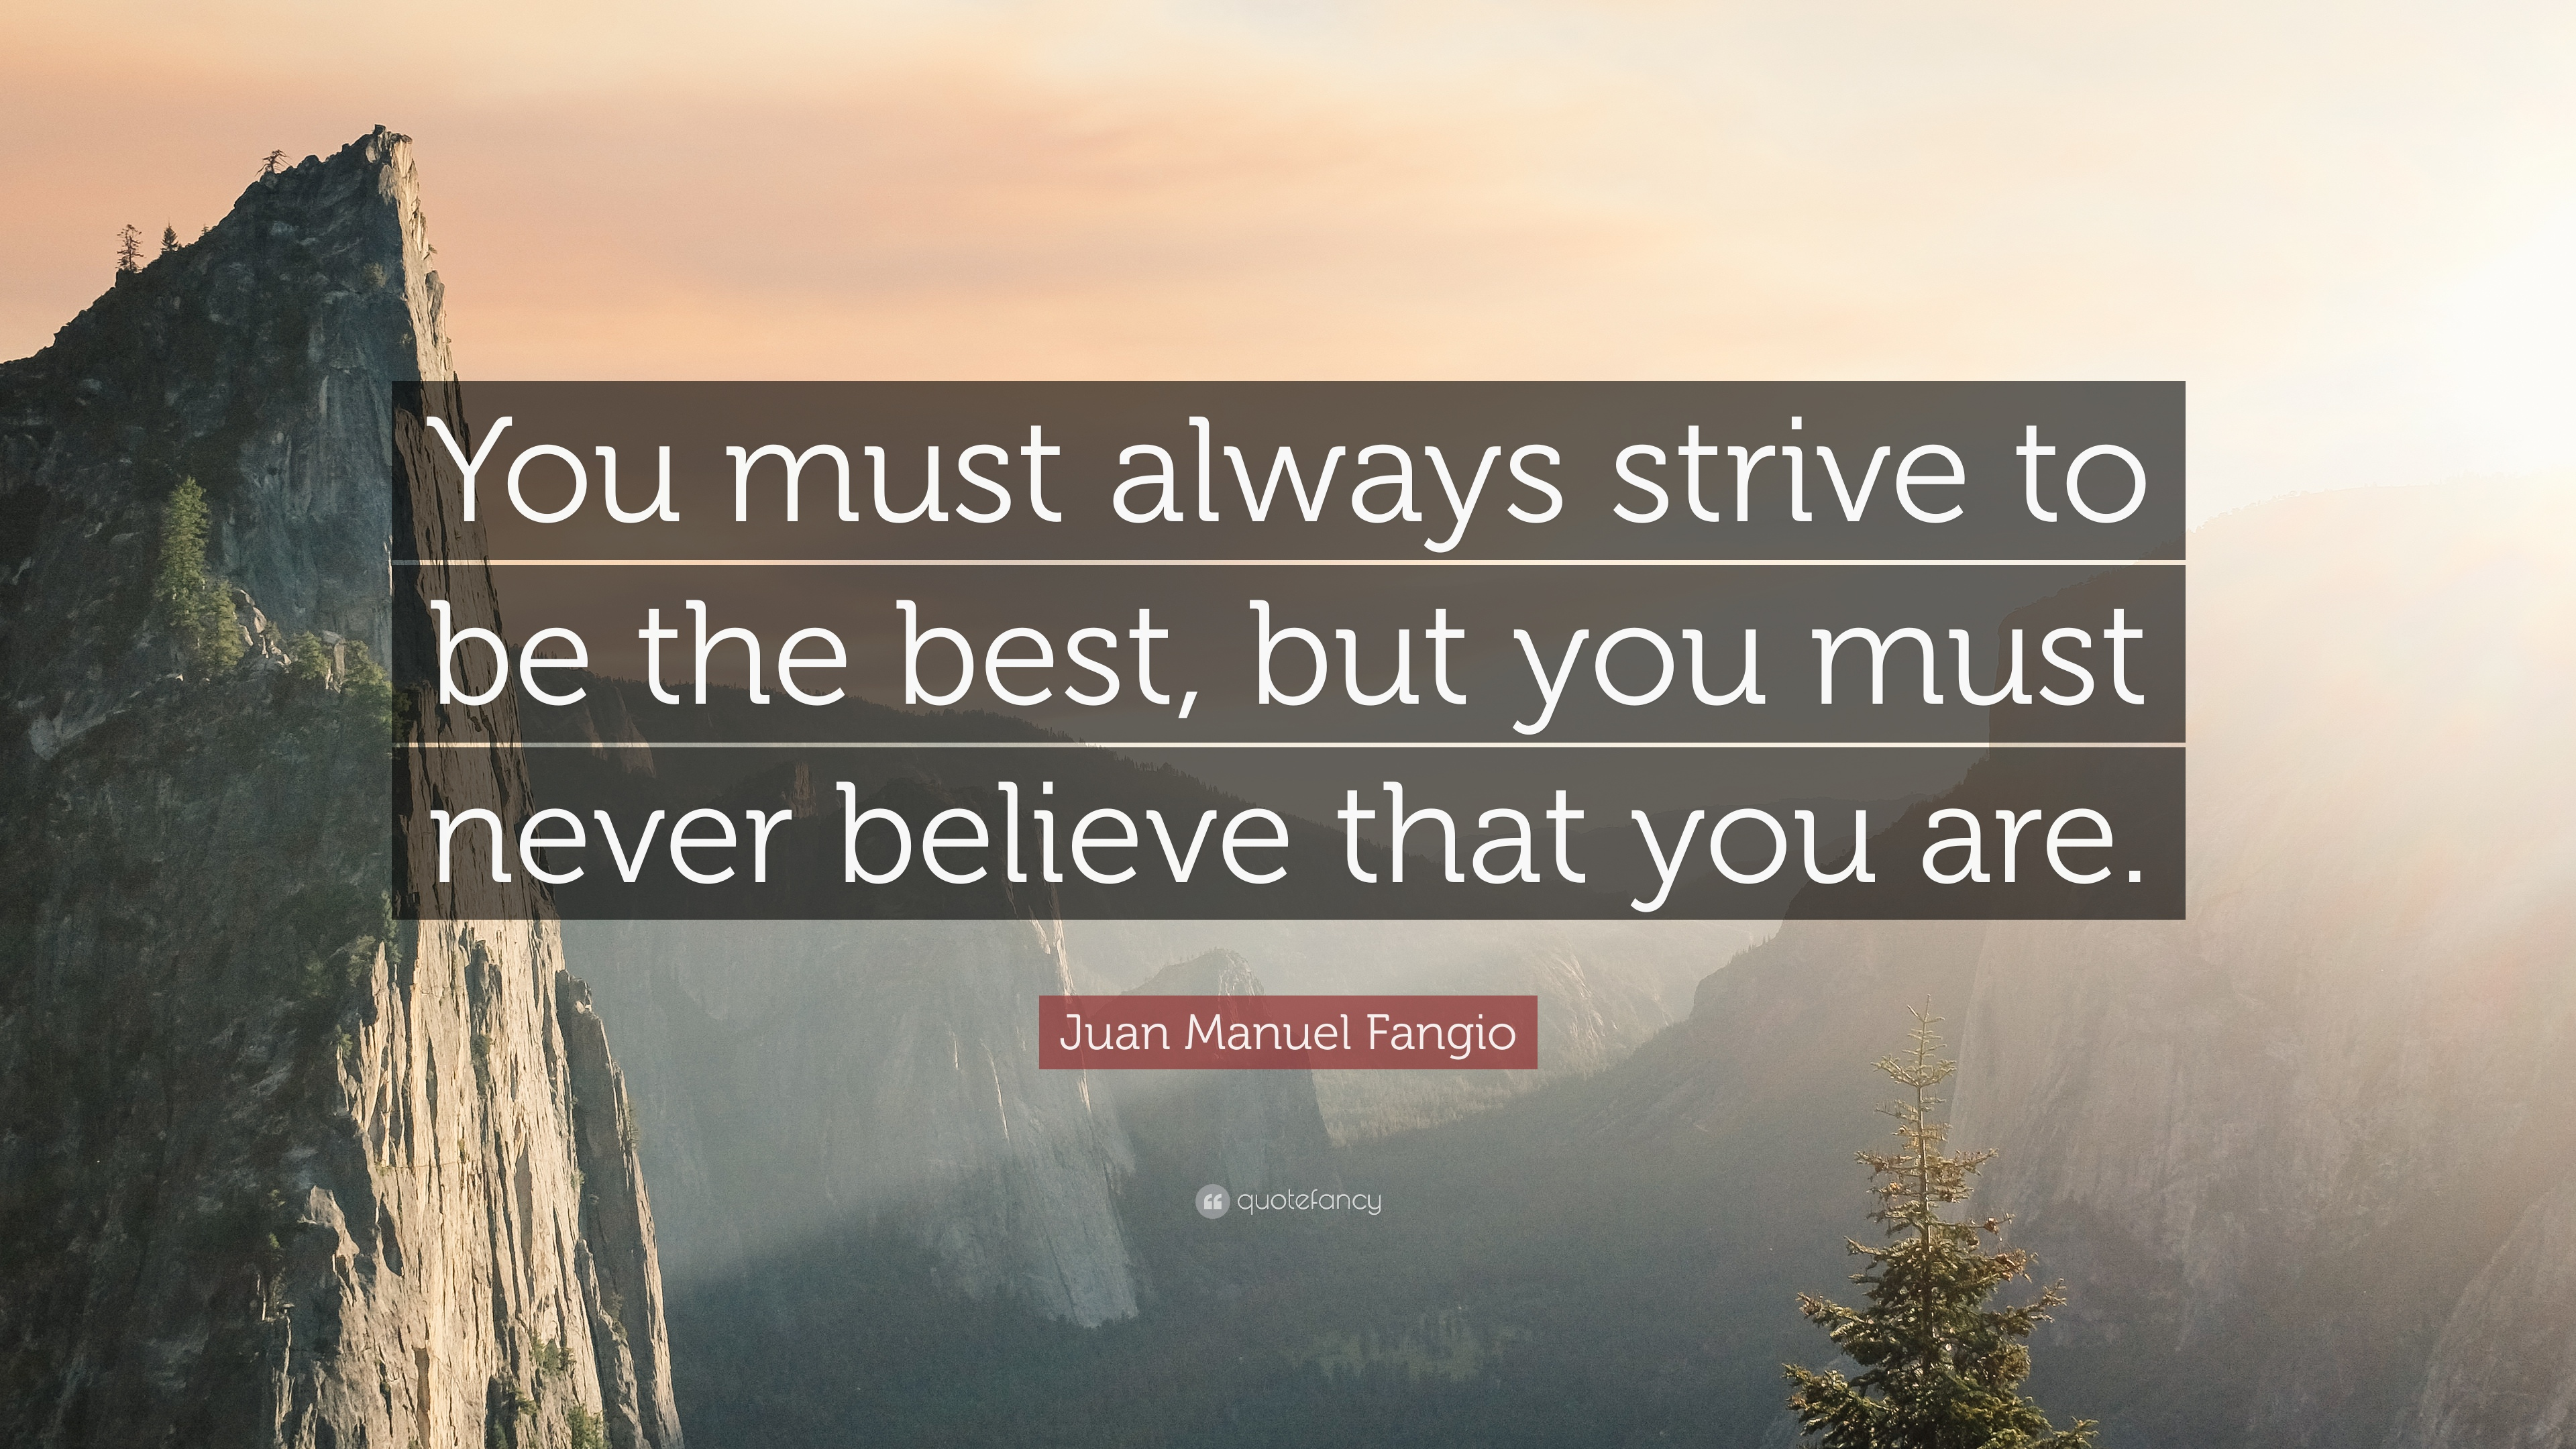 Juan Manuel Fangio Quote You Must Always Strive To Be The Best